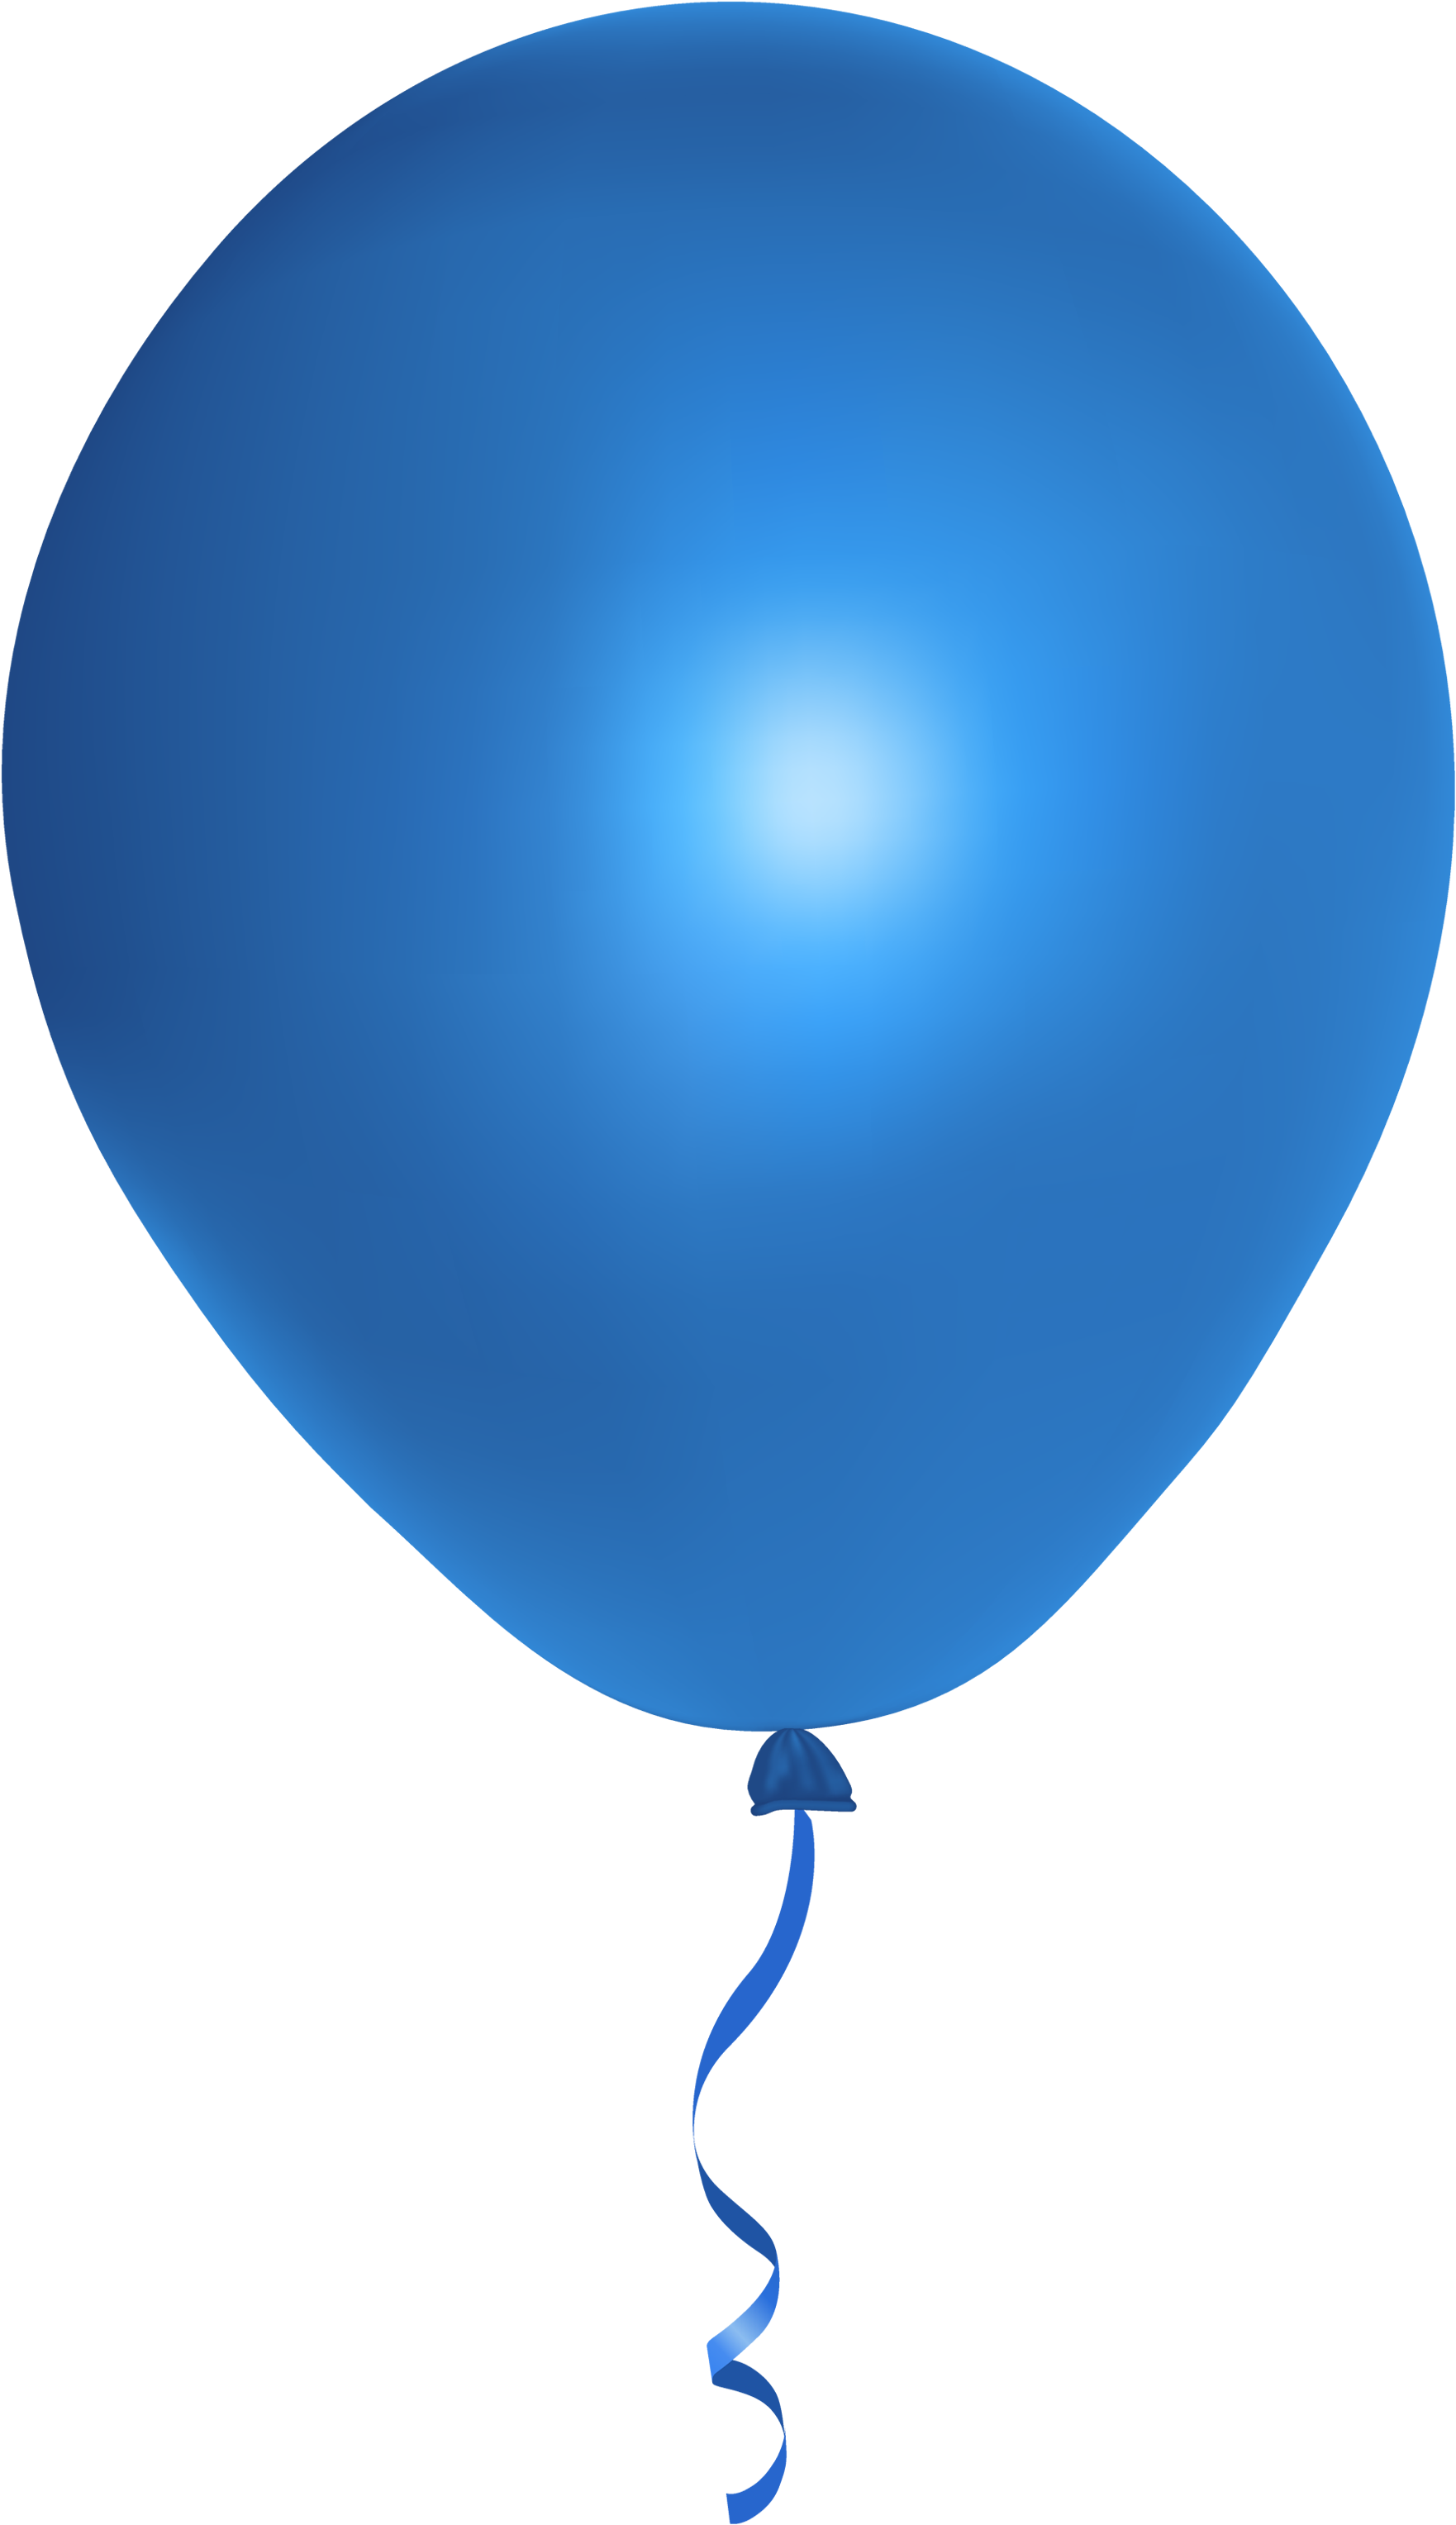 Transparent balloons clipart - Balloon Free Png Transparent Background Images Free - Blue Balloon Png Transparent